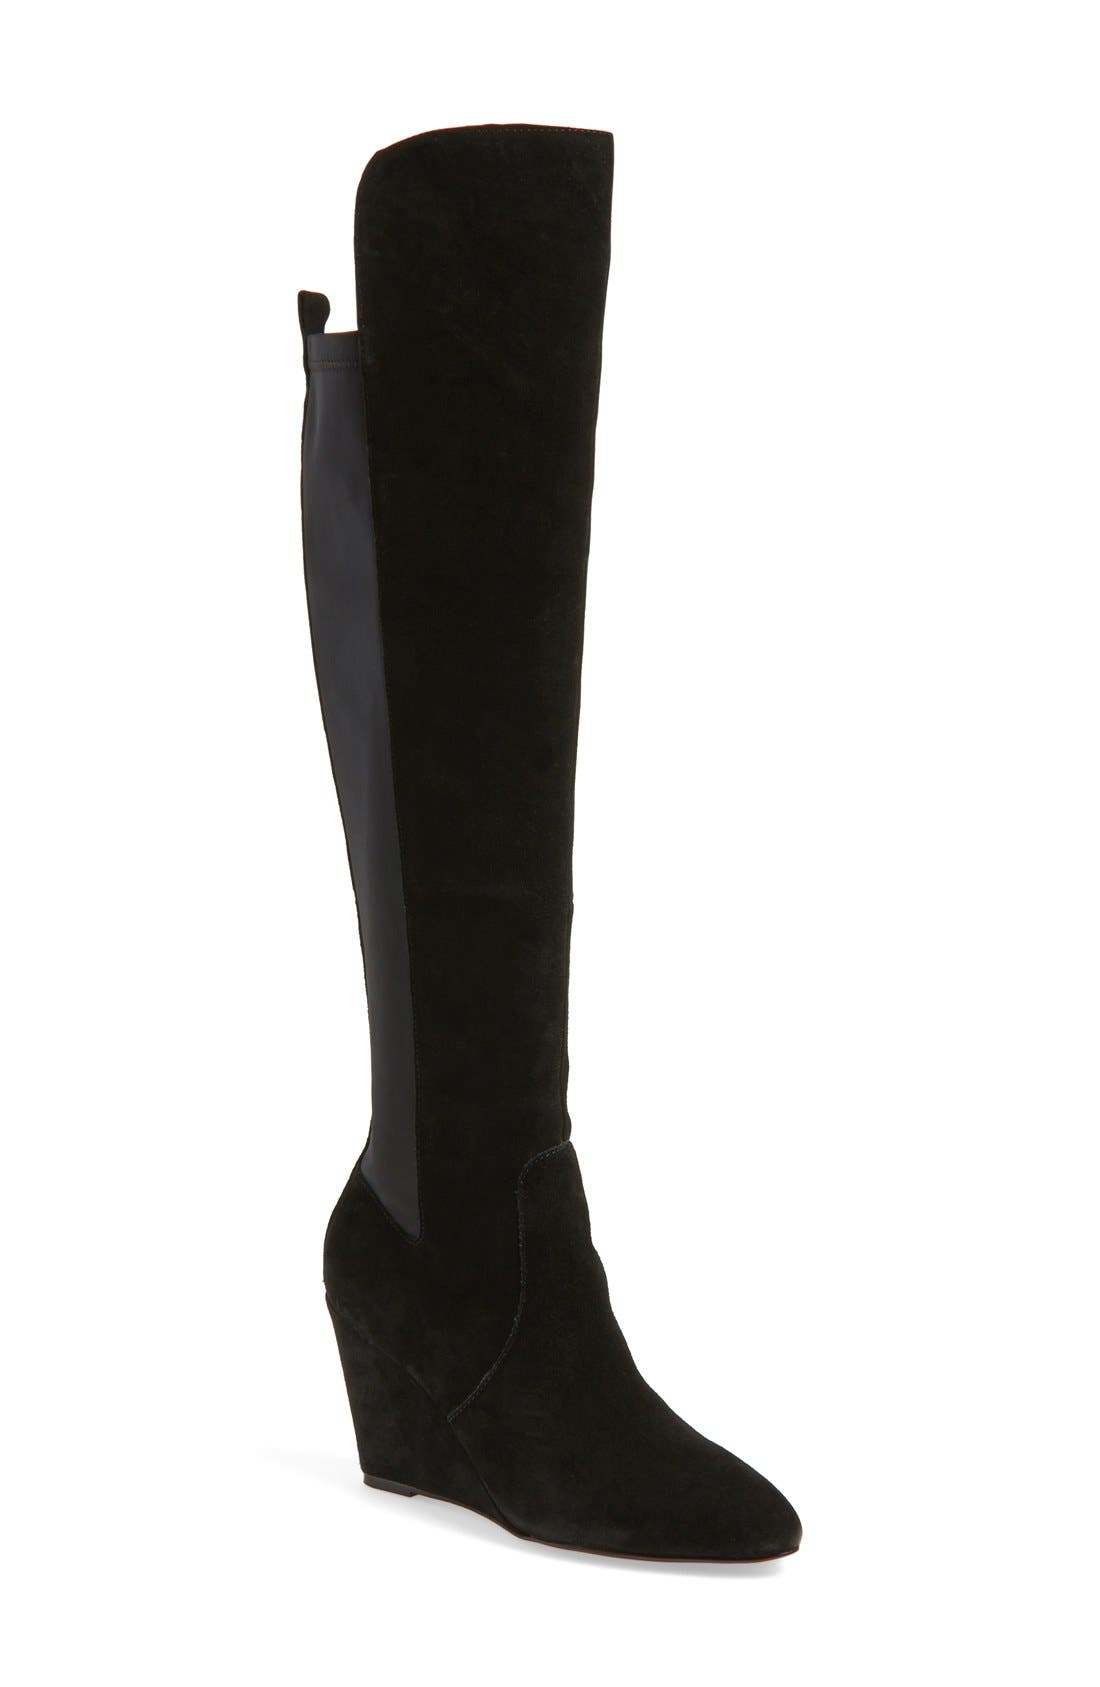 Main Image - Charles by Charles David 'Edie' Over the Knee Boot (Women)